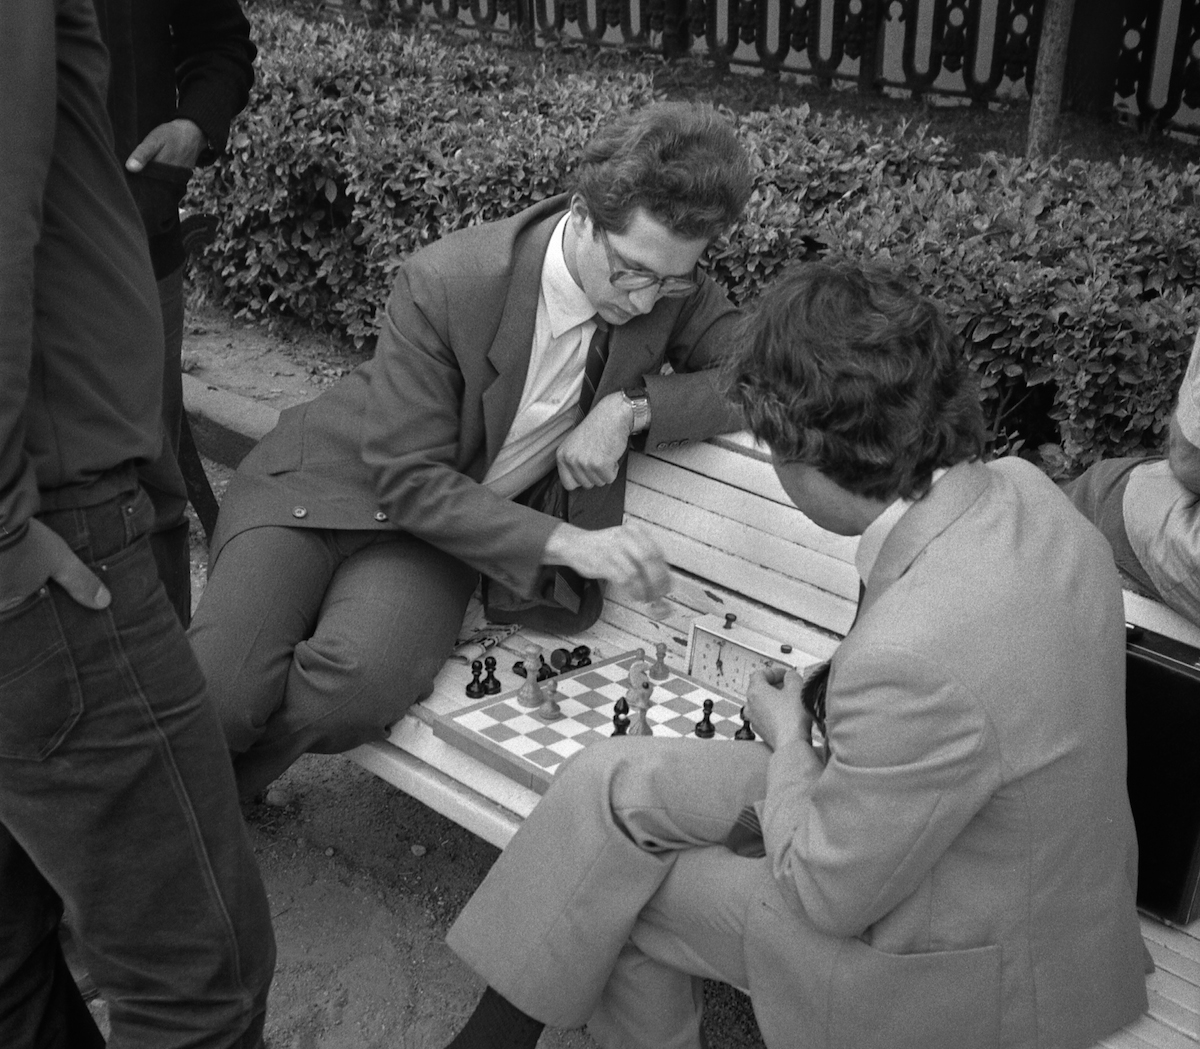 Moscow 1980s chess